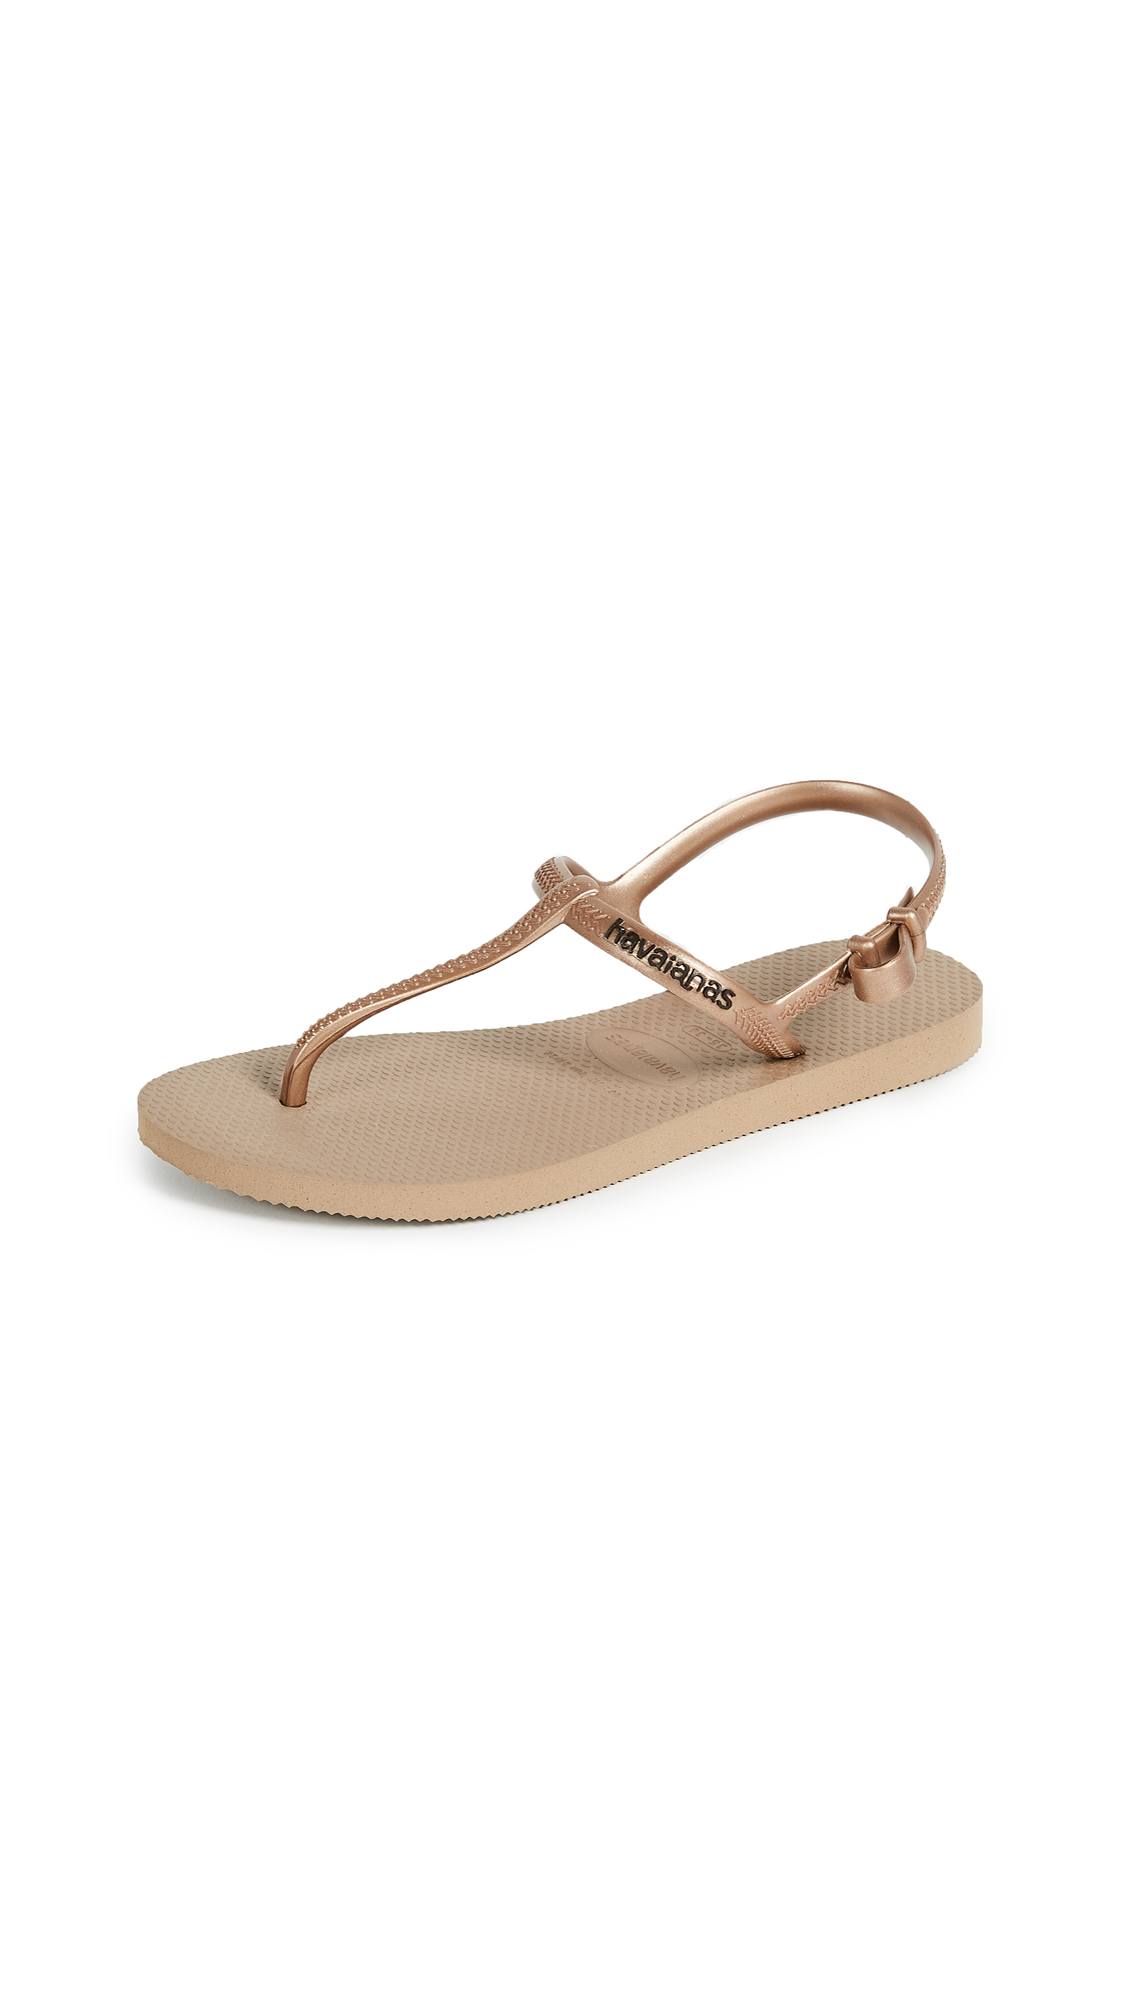 Havaianas Freedom T Strap Sandals - Rose Gold